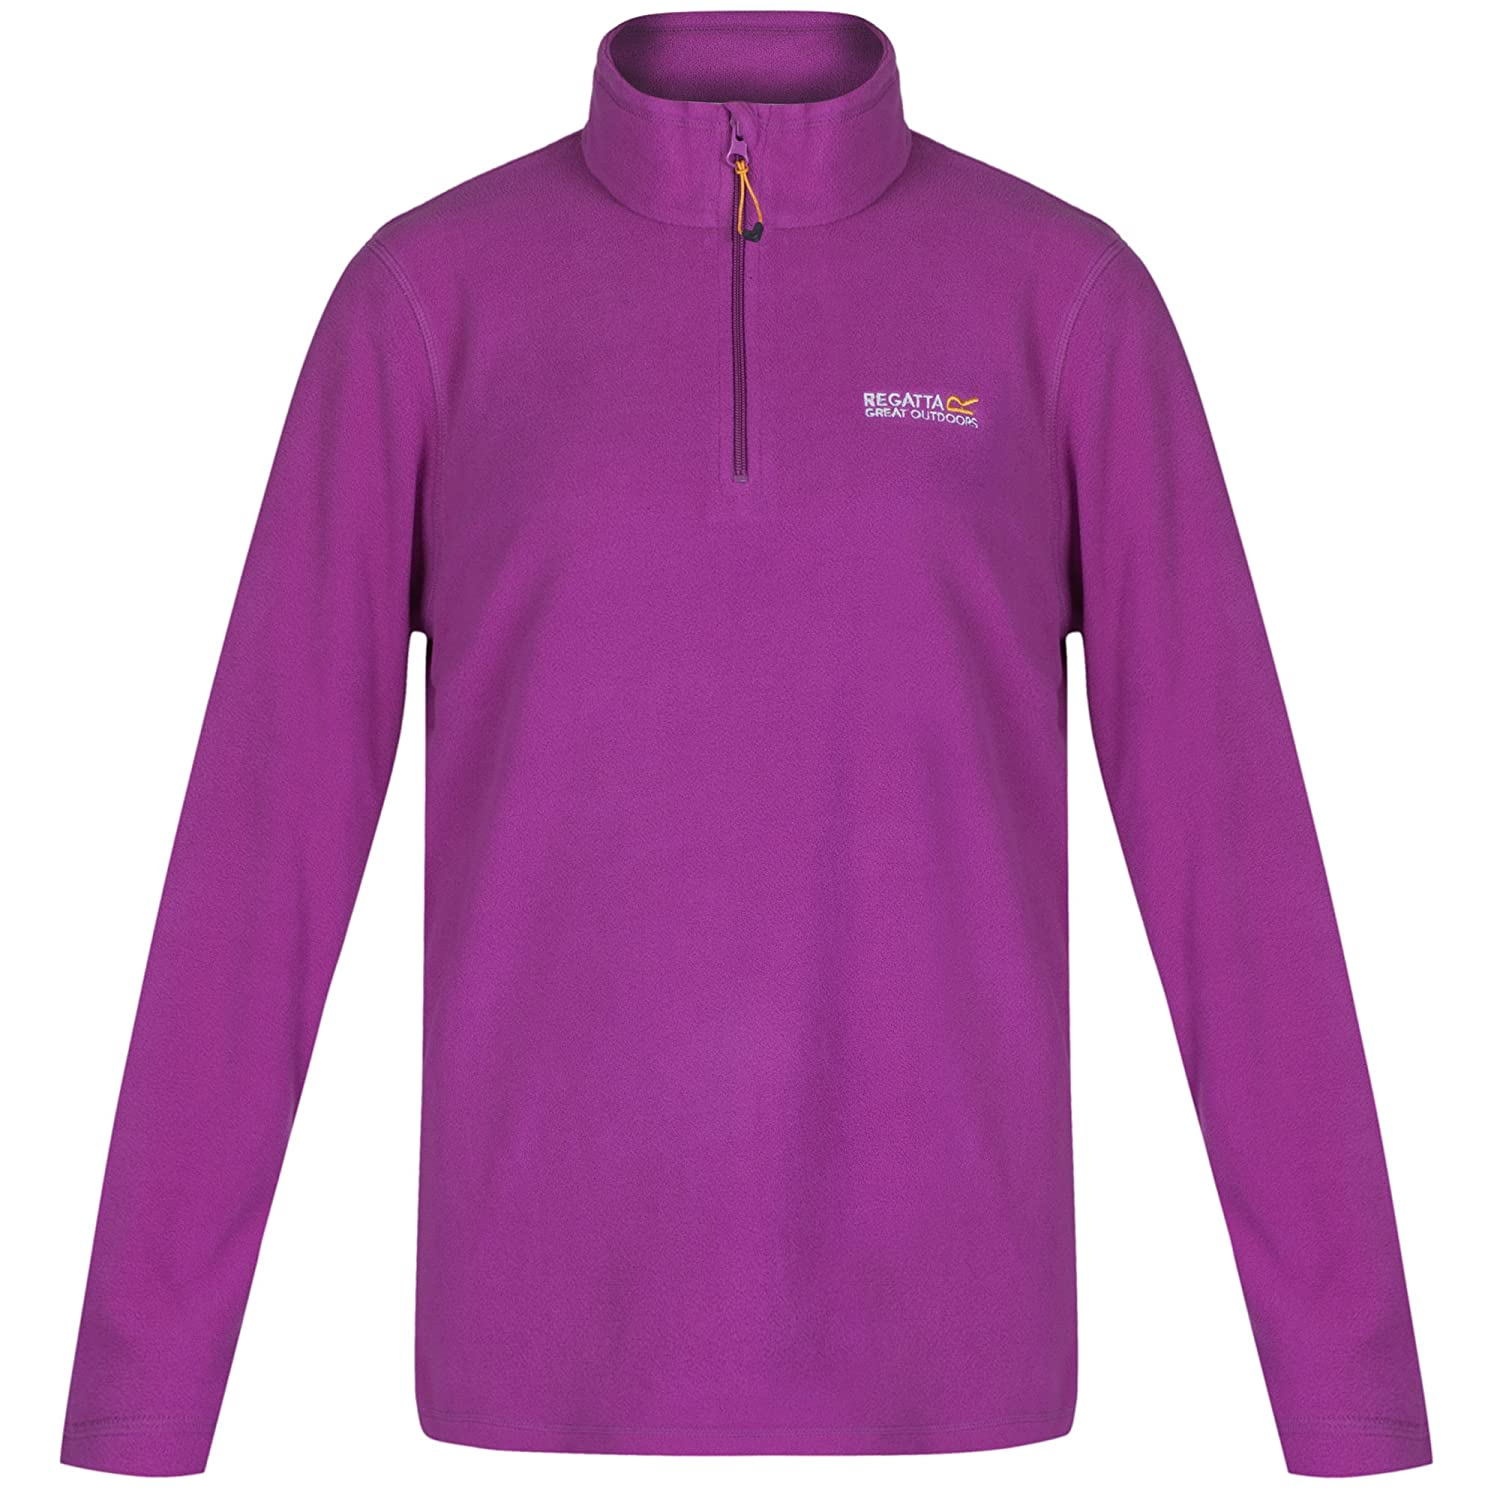 Regatta Women's Sweethart Fleece Jacket